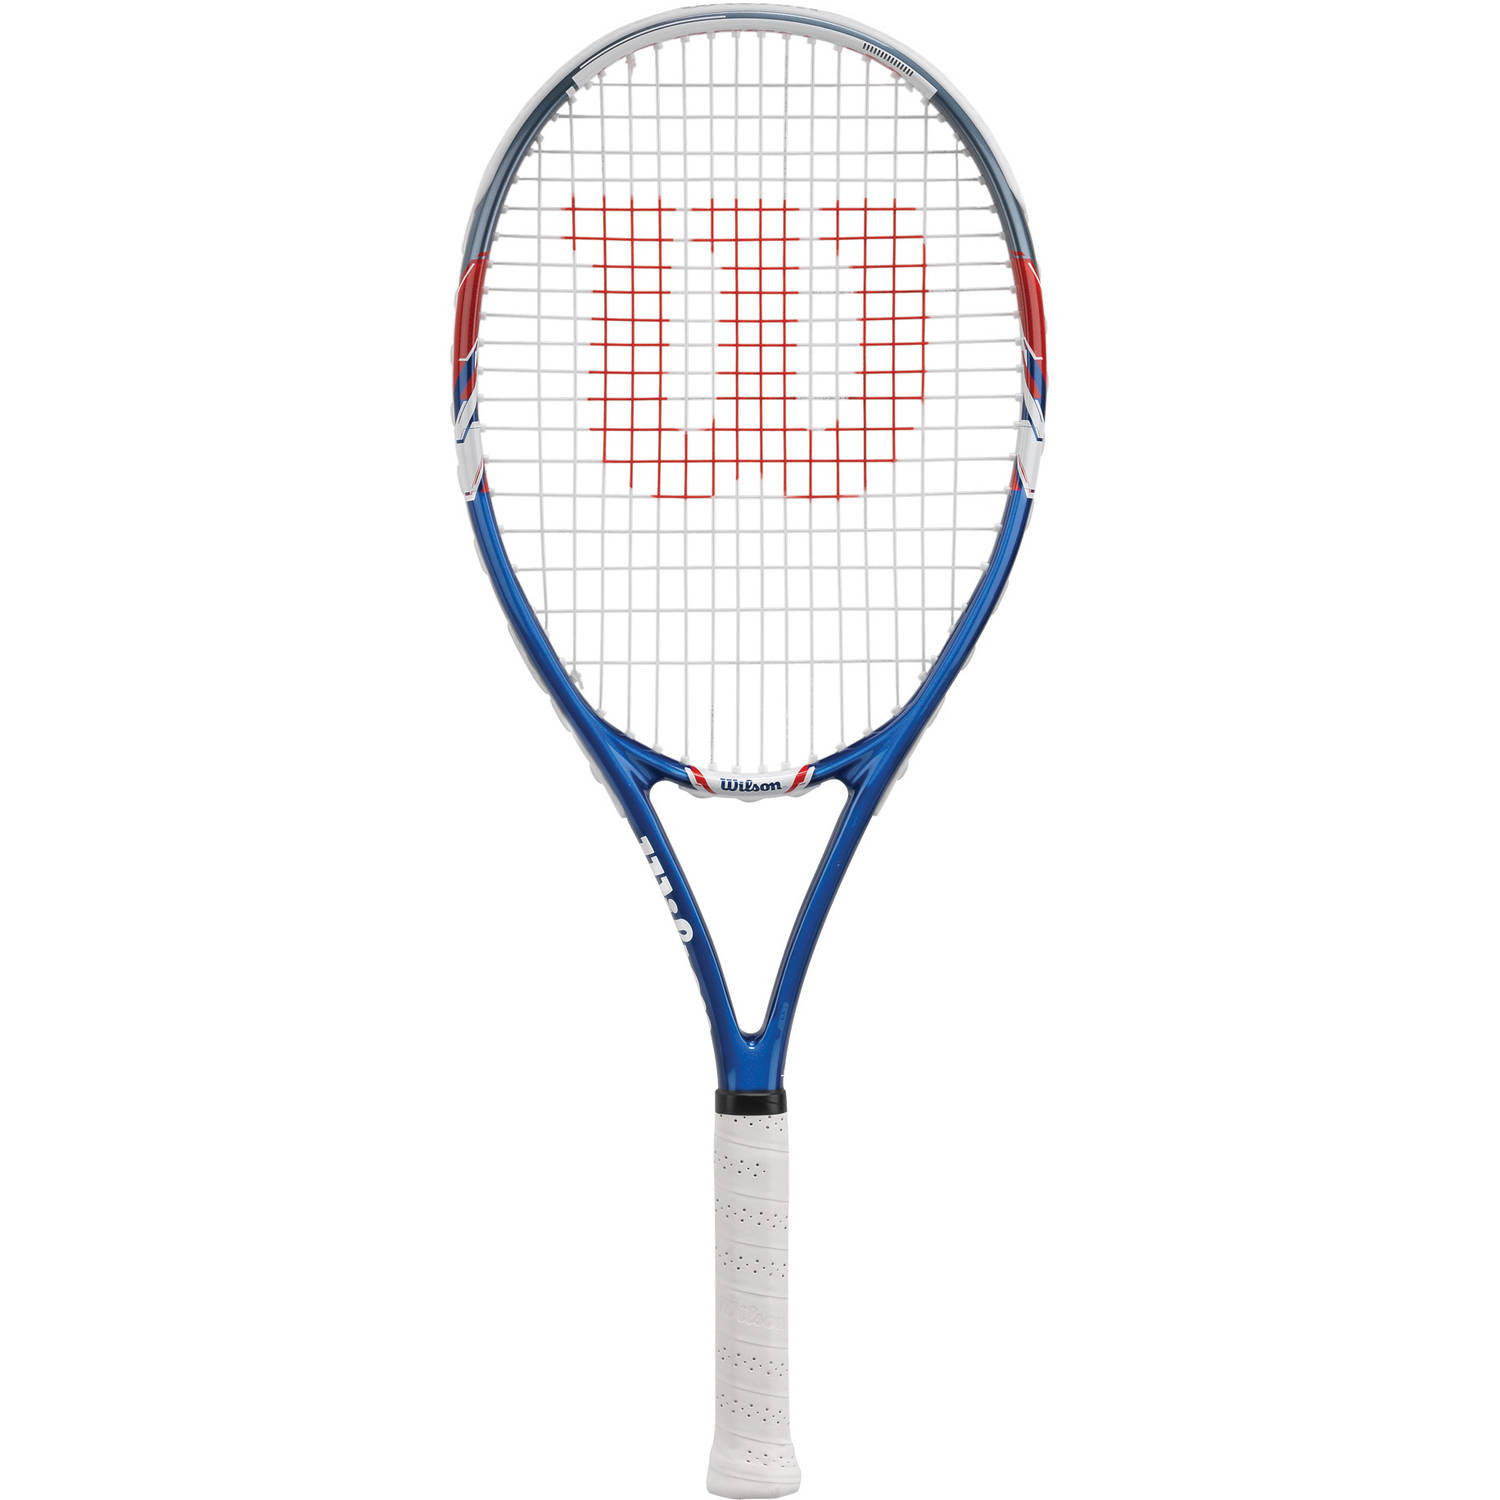 "Wilson US Open Tennis Racket w/ 4.25"" Grip"